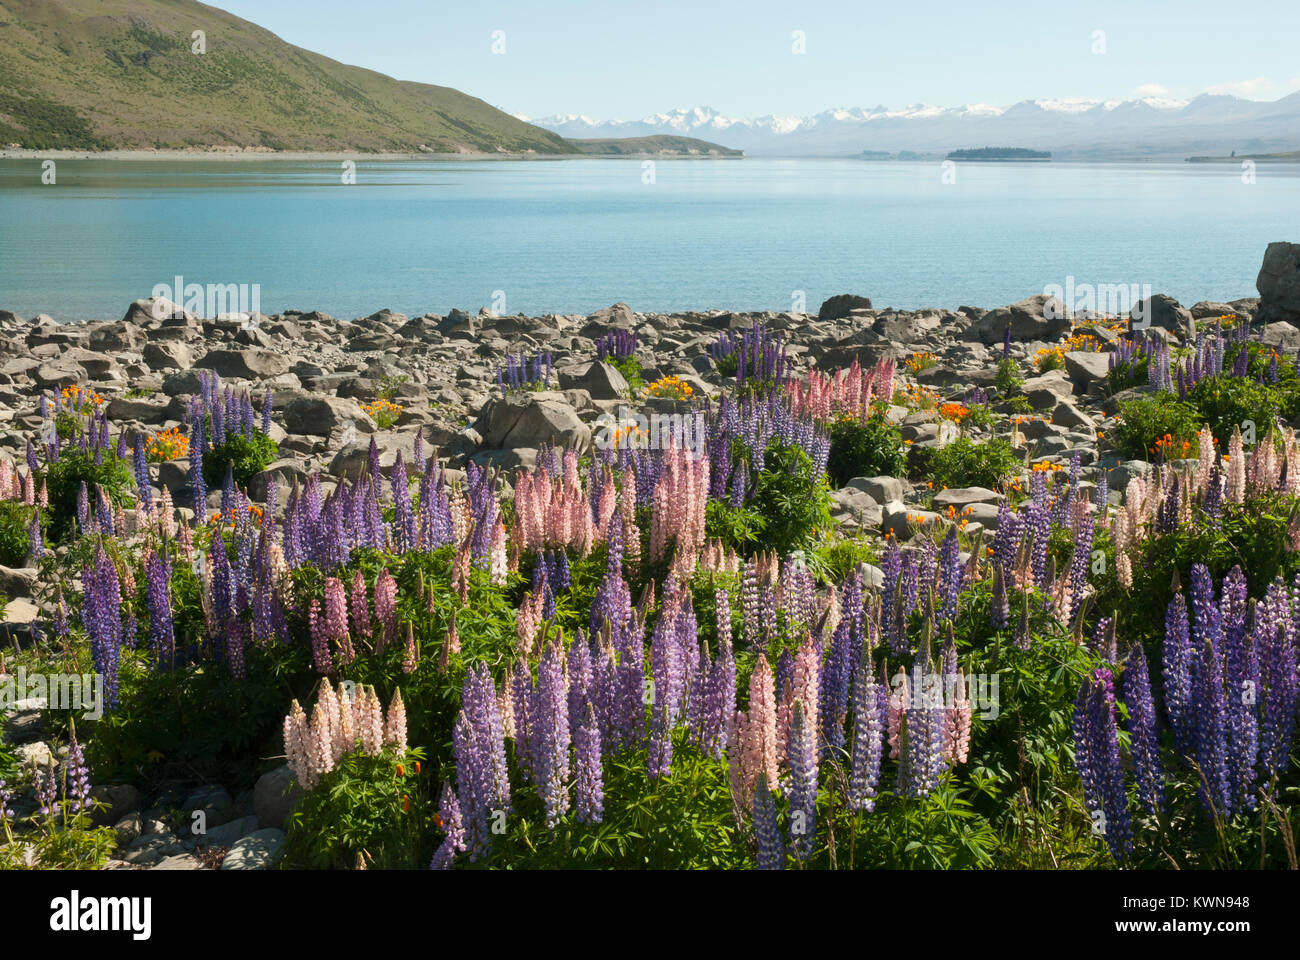 Colourful landscape of Lake Tekapo, Spring/ Summer, with blue lake surrounded by snow capped mountains and colourfull Stock Photo